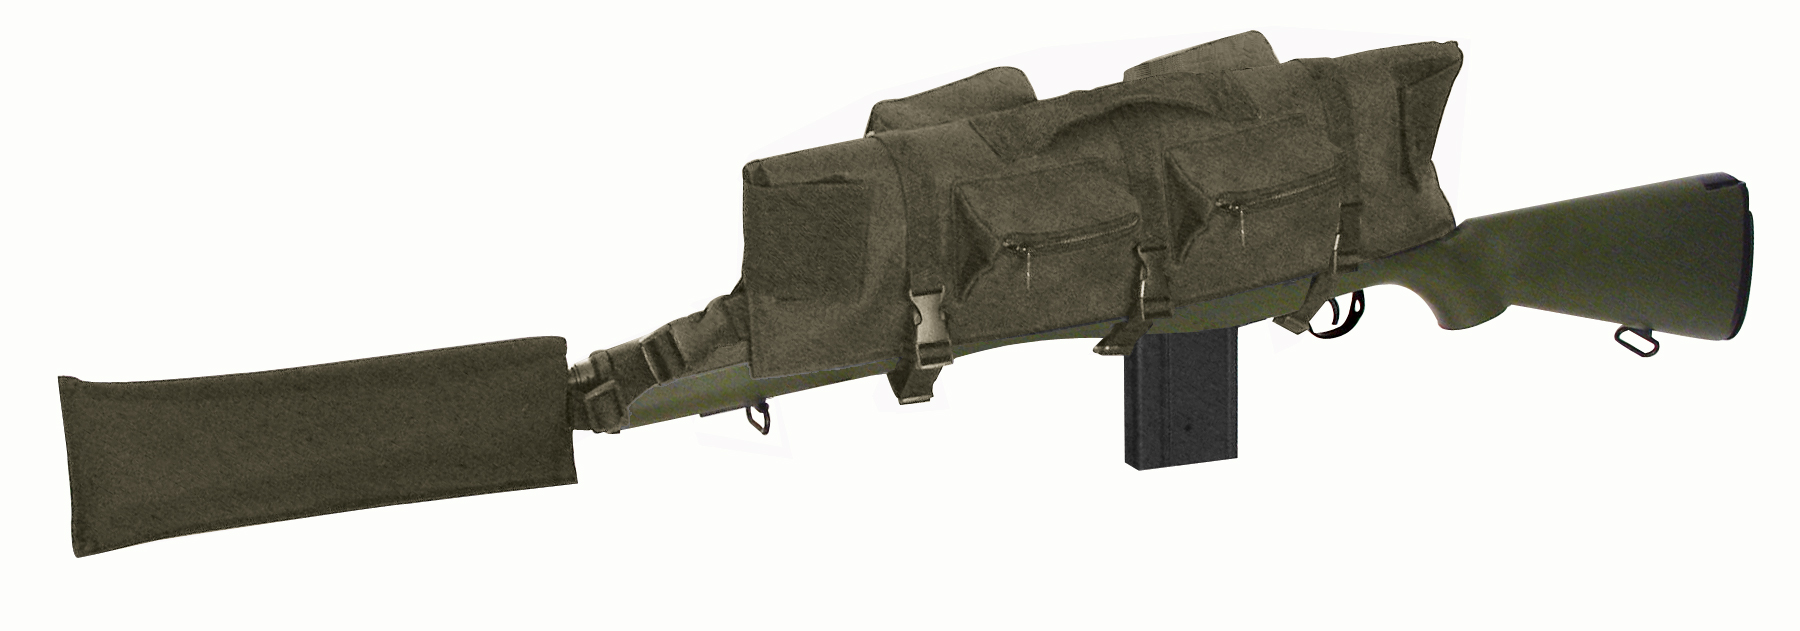 Deluxe Scope Guard with Pockets